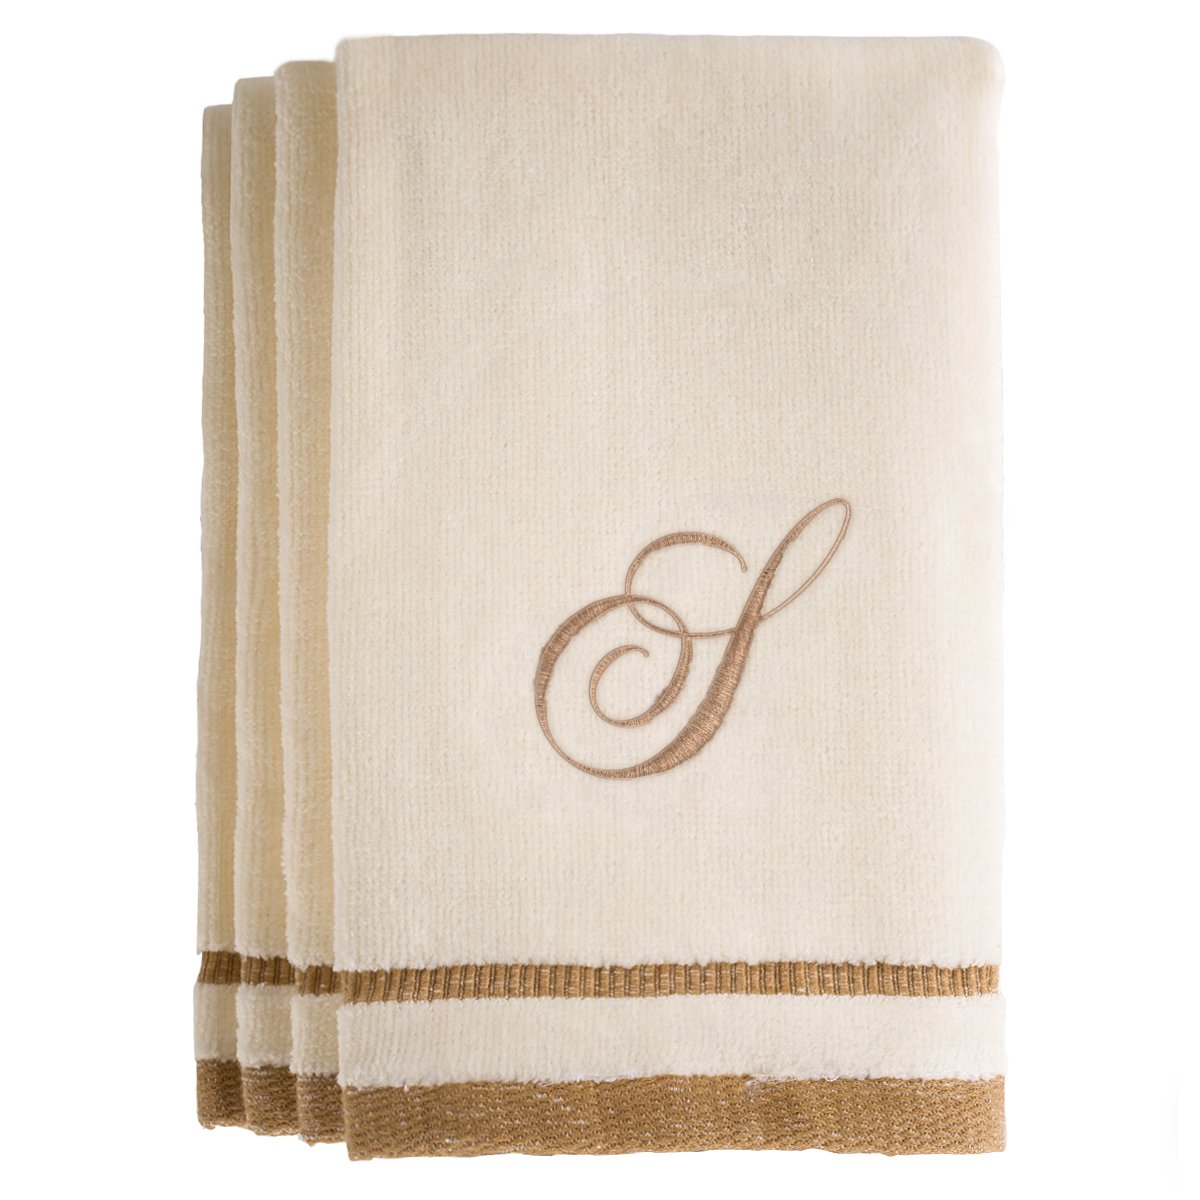 Monogrammed Gifts, Fingertip Towels, 11 x 18 Inches - Set of 4- Decorative Golden Brown Embroidered Towel - Extra Absorbent 100% Cotton- Personalized Gift- For Bathroom/Kitchen- Initial S (Ivory) by Creative Scents (Image #7)